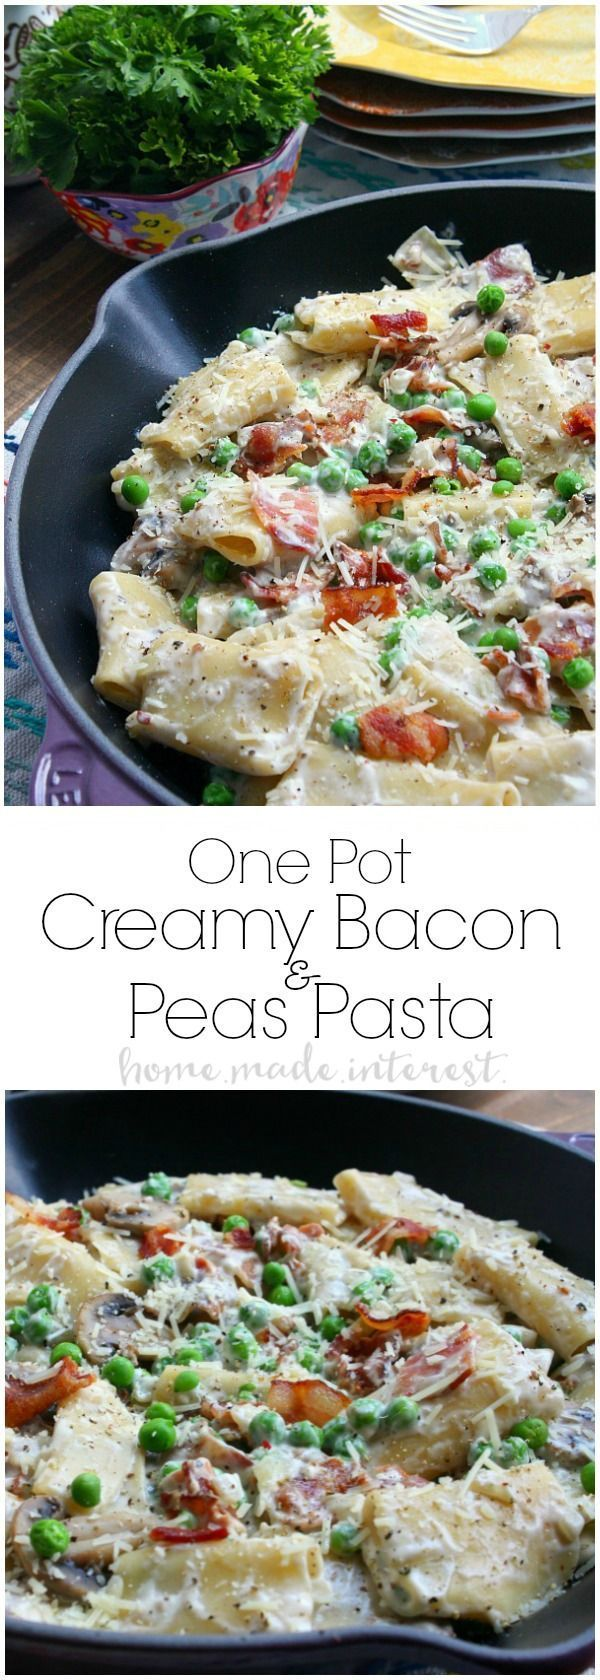 This easy One Pot Creamy Bacon and Peas takes less than 30 minutes to make! It is an easy dinner recipe that is perfect for summer when you want to spend time enjoying the sunshine and not slaving away over dinner! SmithfieldFlavor AD